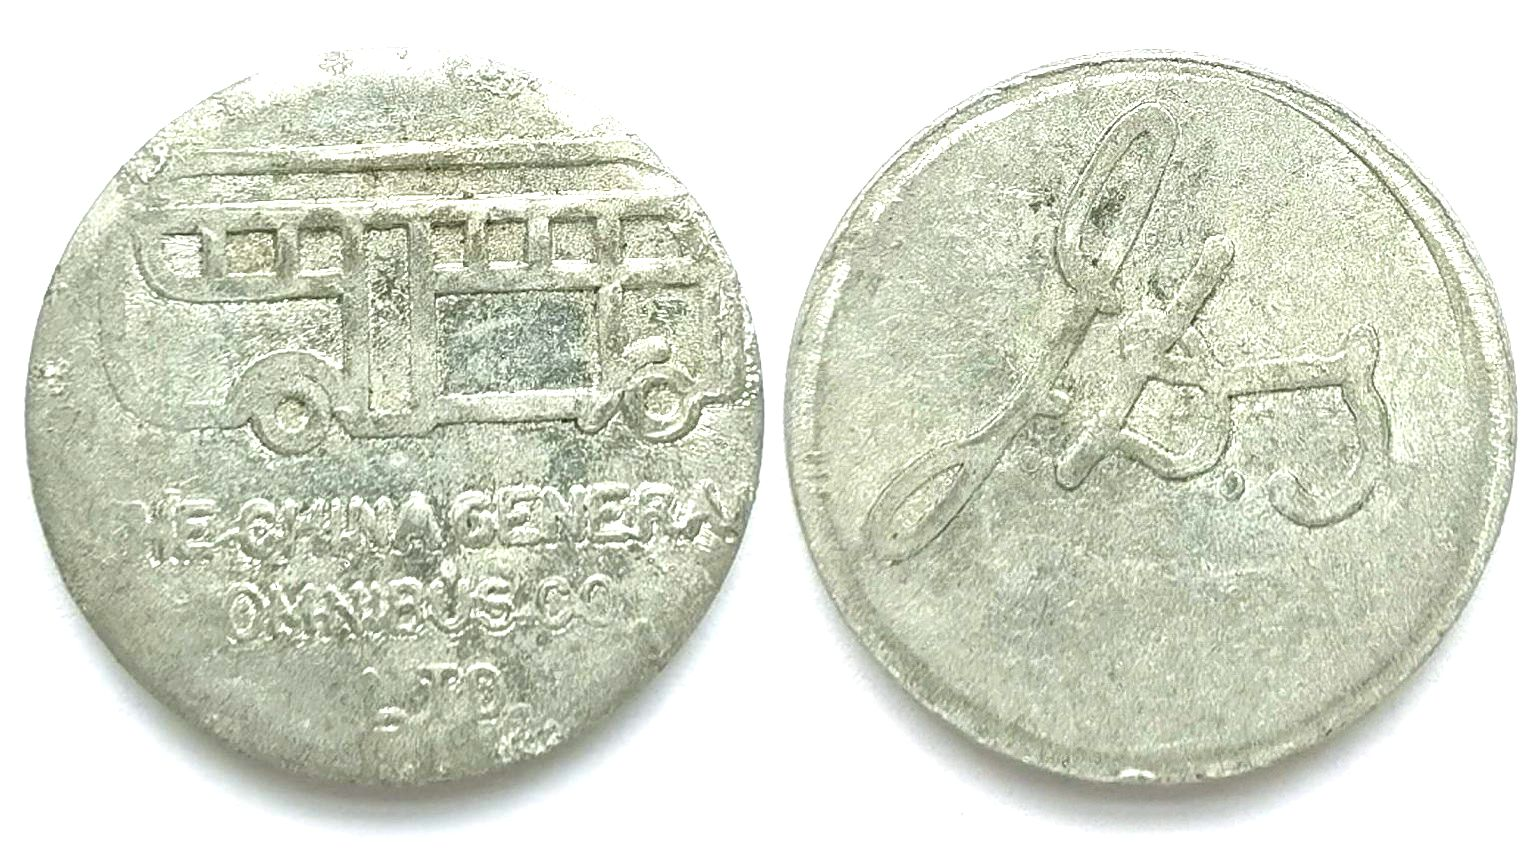 BT011, Shanghai Bus Token, 1939 Issue 1 Cent